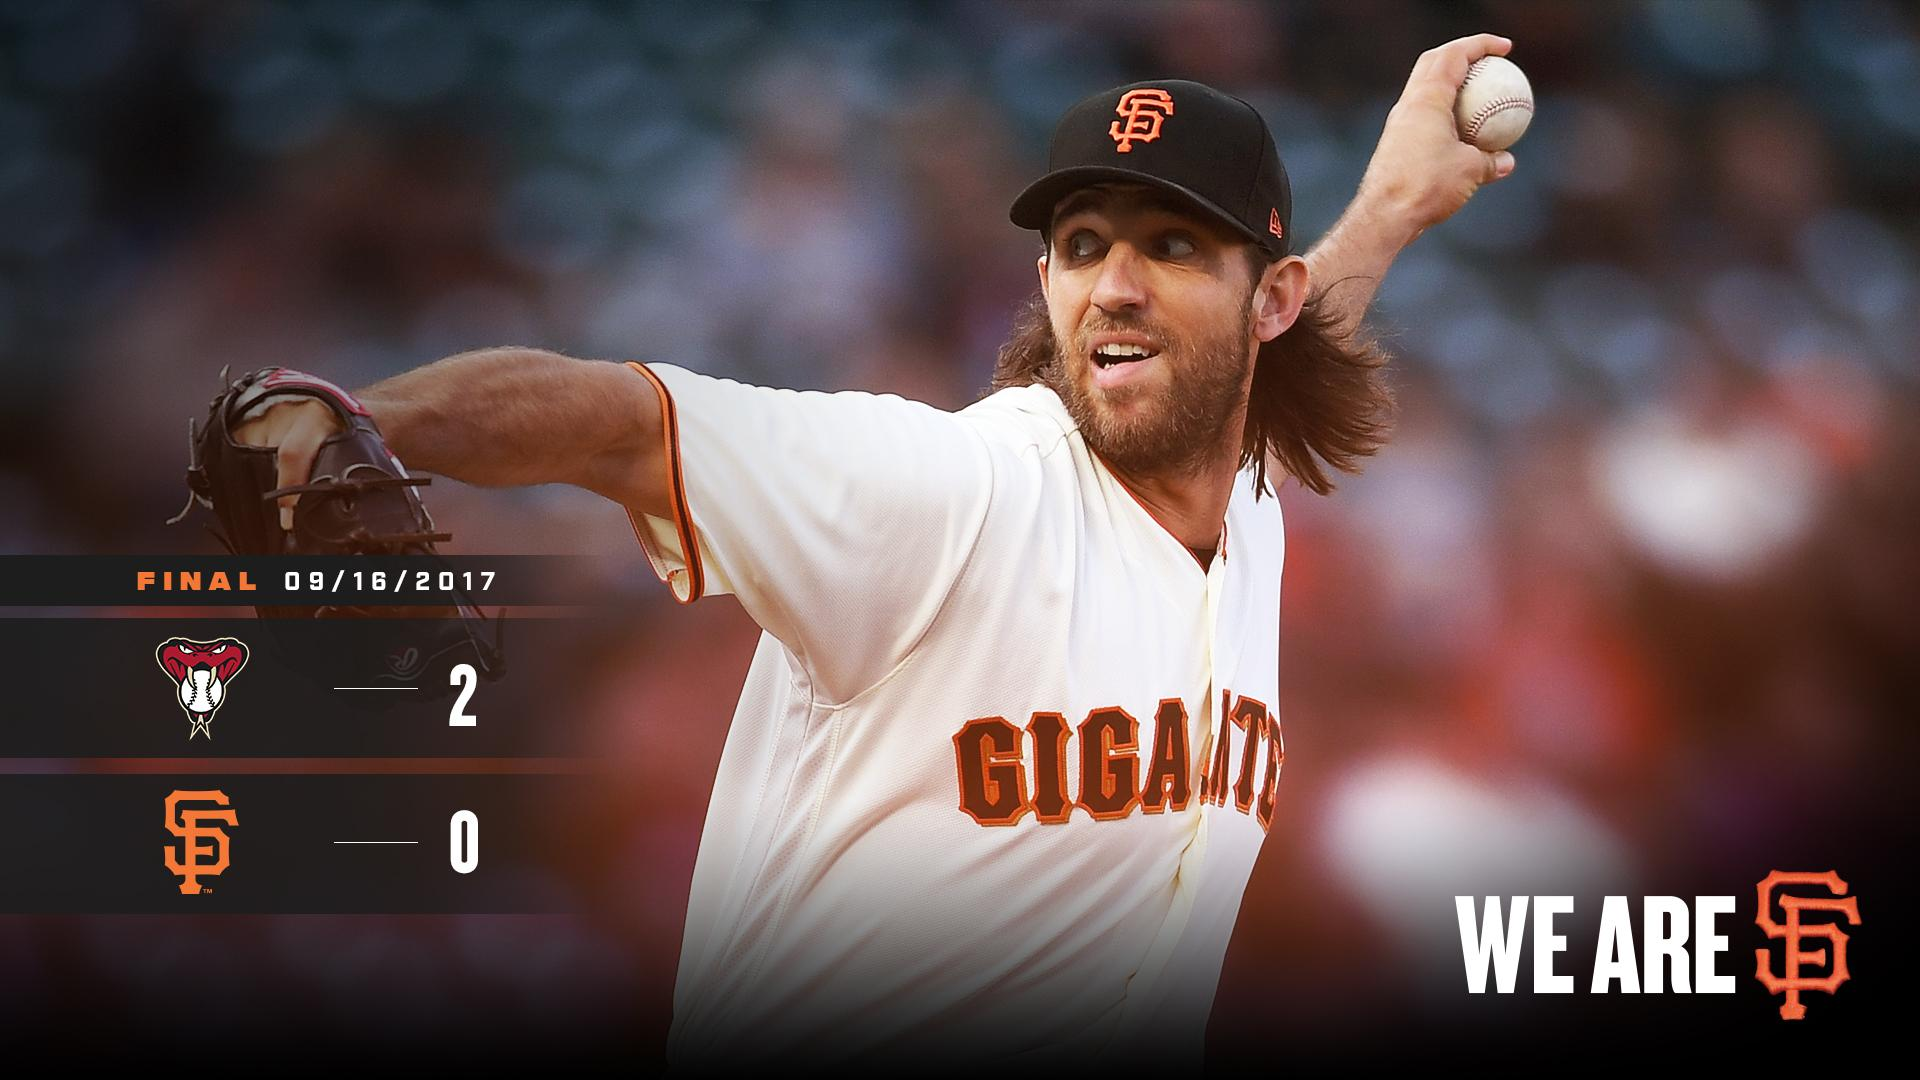 RECAP: Madison Bumgarner goes 7 strong in #SFGiants' loss vs. D-backs. https://t.co/Tgf0BcXEaA https://t.co/waTvg2F4IQ